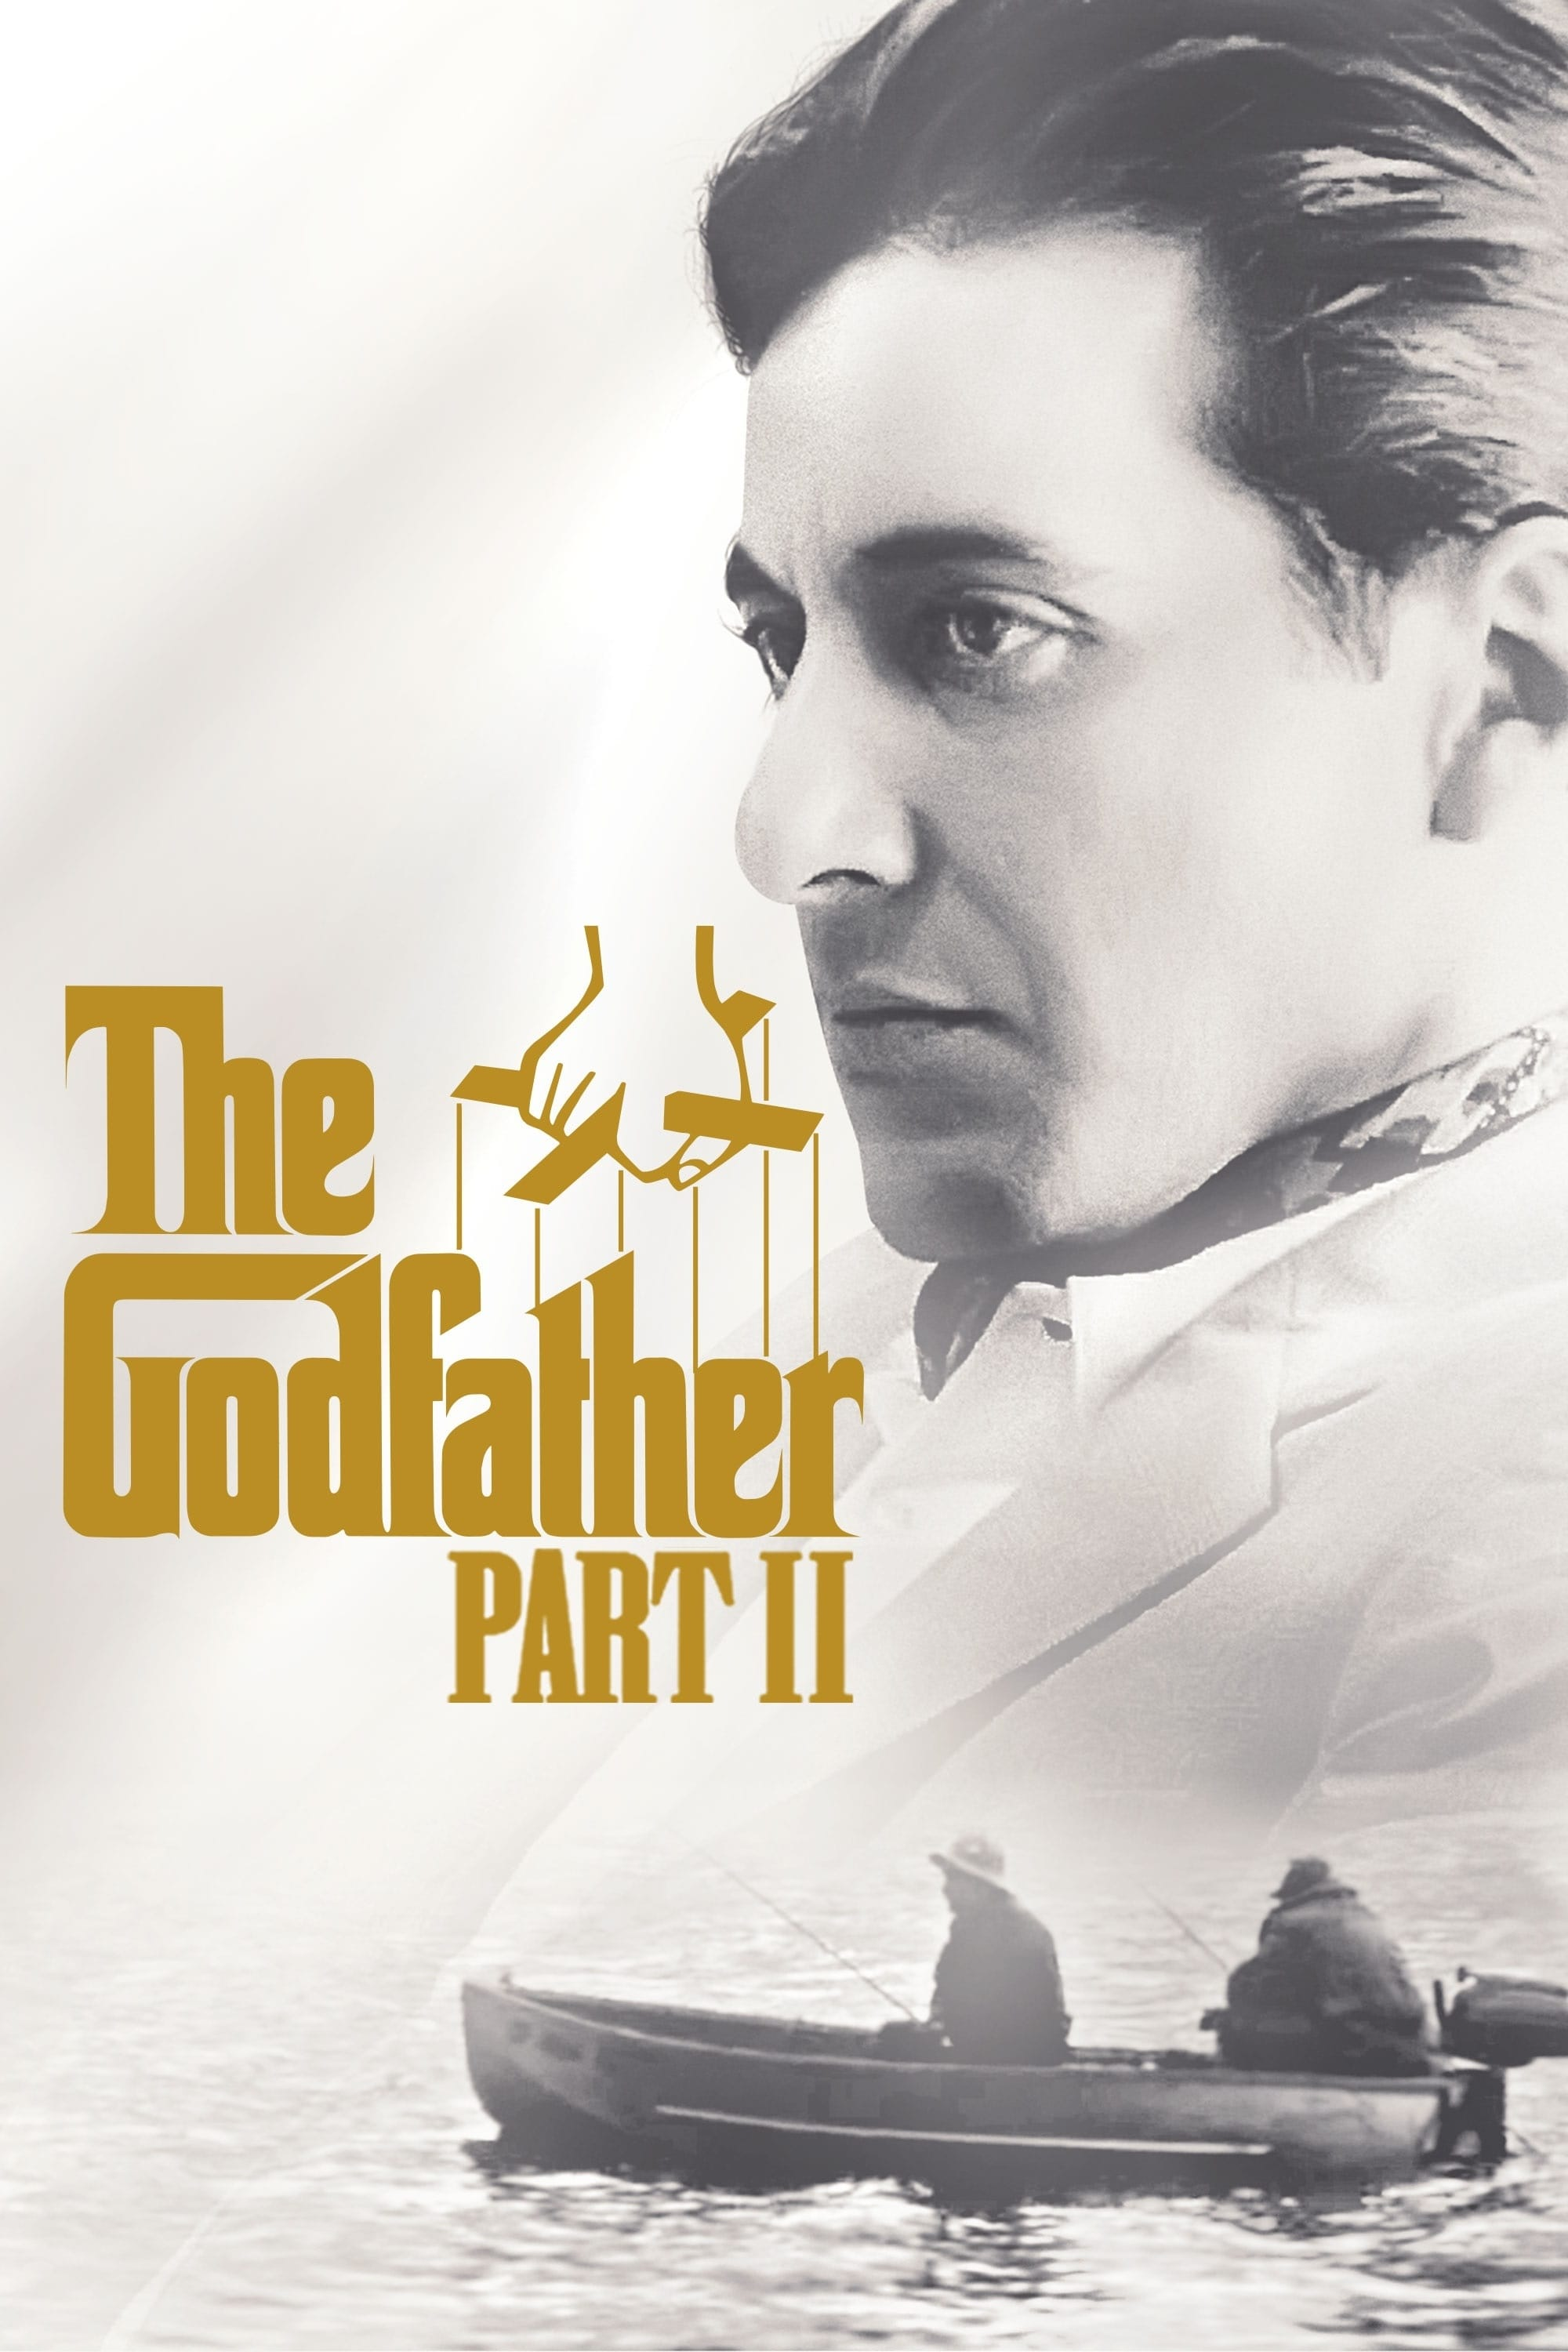 the godfather part ii 1974 � moviesfilmcinecom